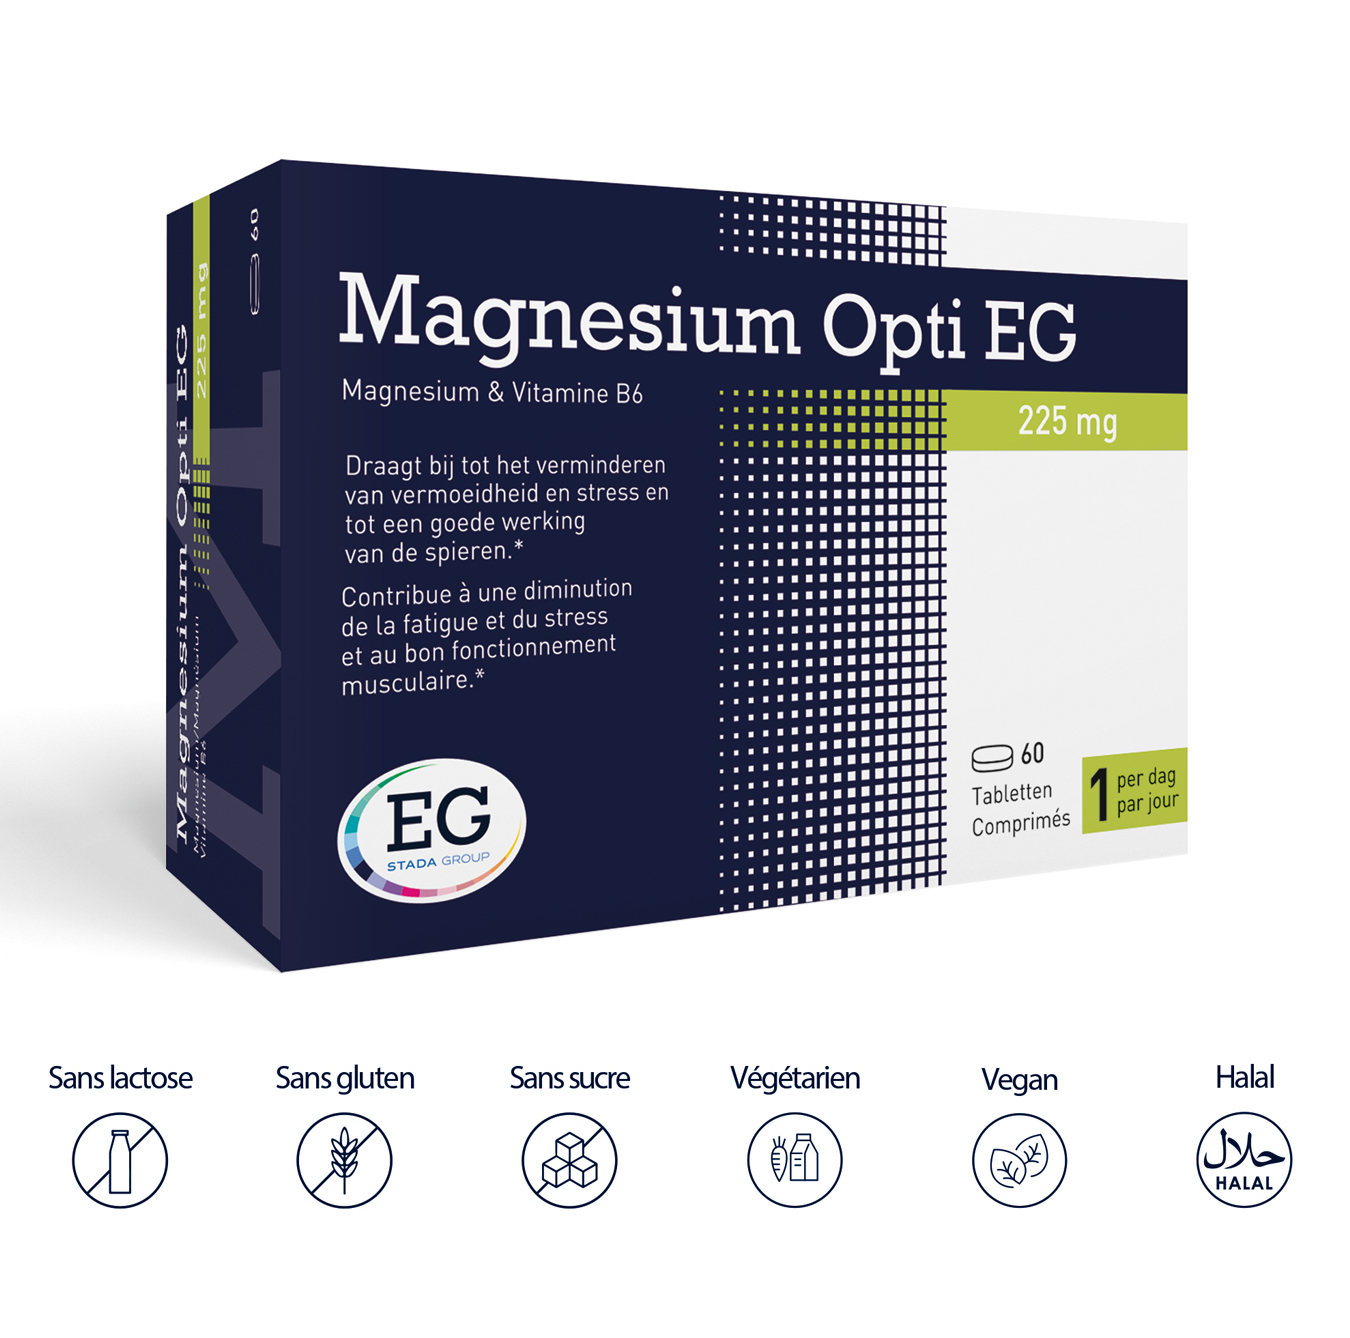 Fatigue et stress - <b>Magnesium Opti EG</b>